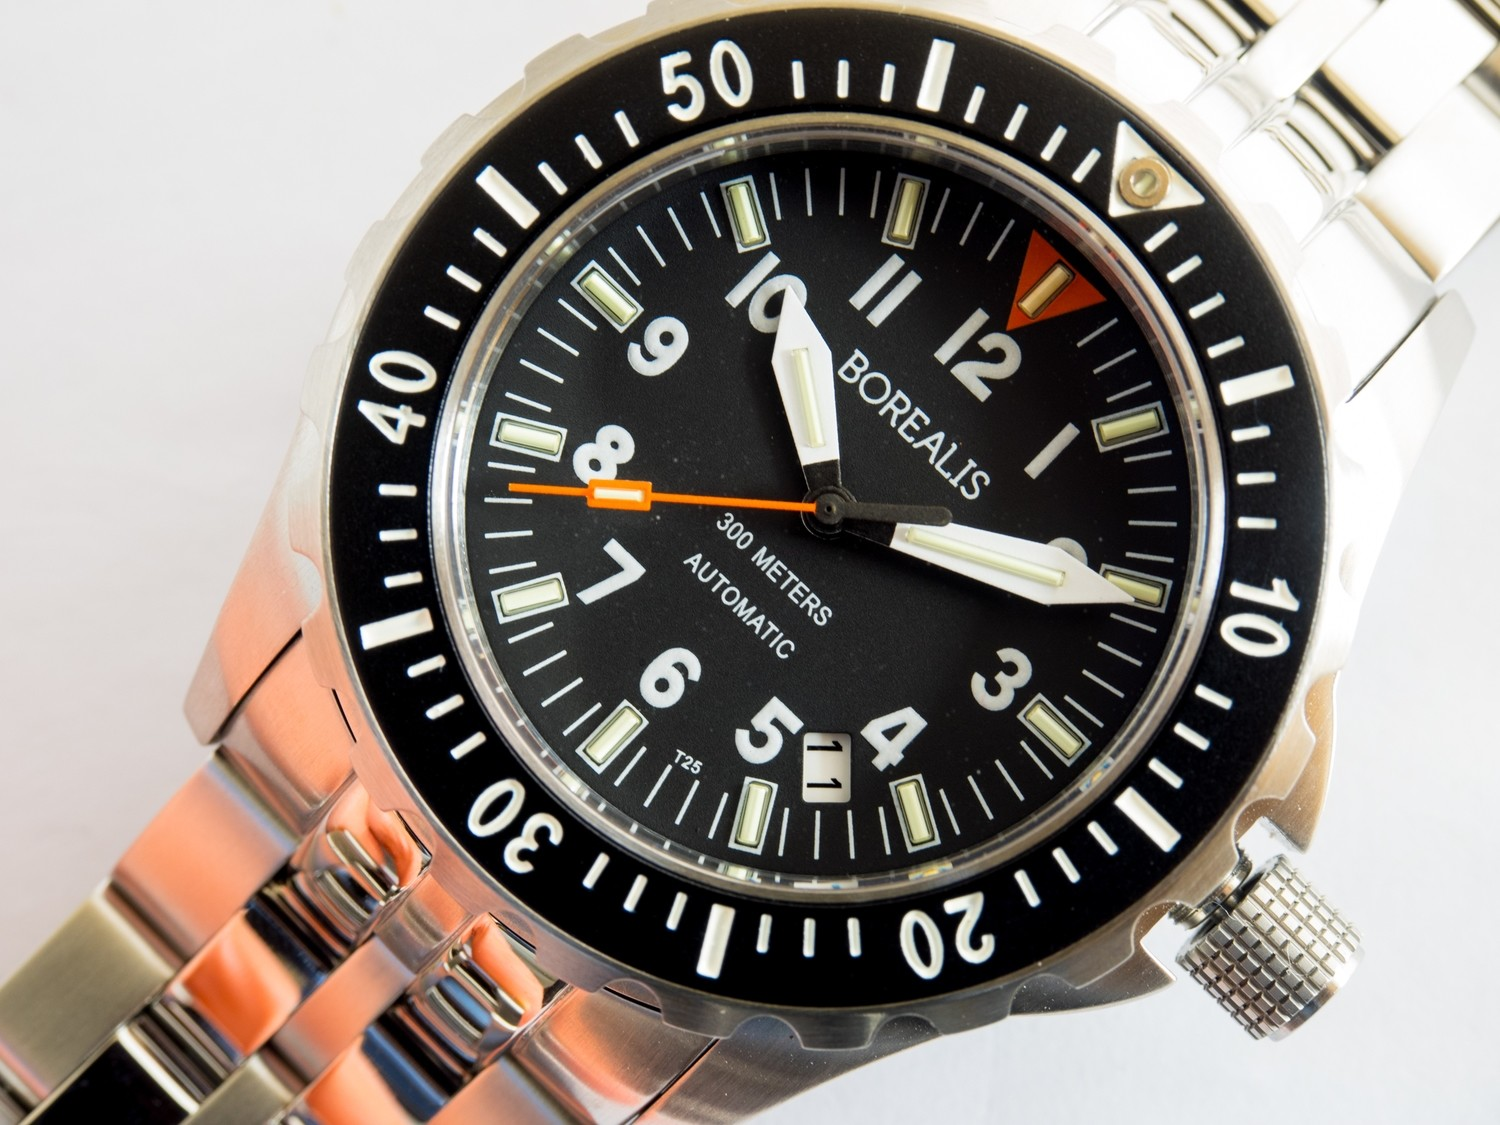 Borealis Scout Sniper 300m Automatic NH35 Movement Diver Watch with T25 Tritium MB-MicroTech Tubes